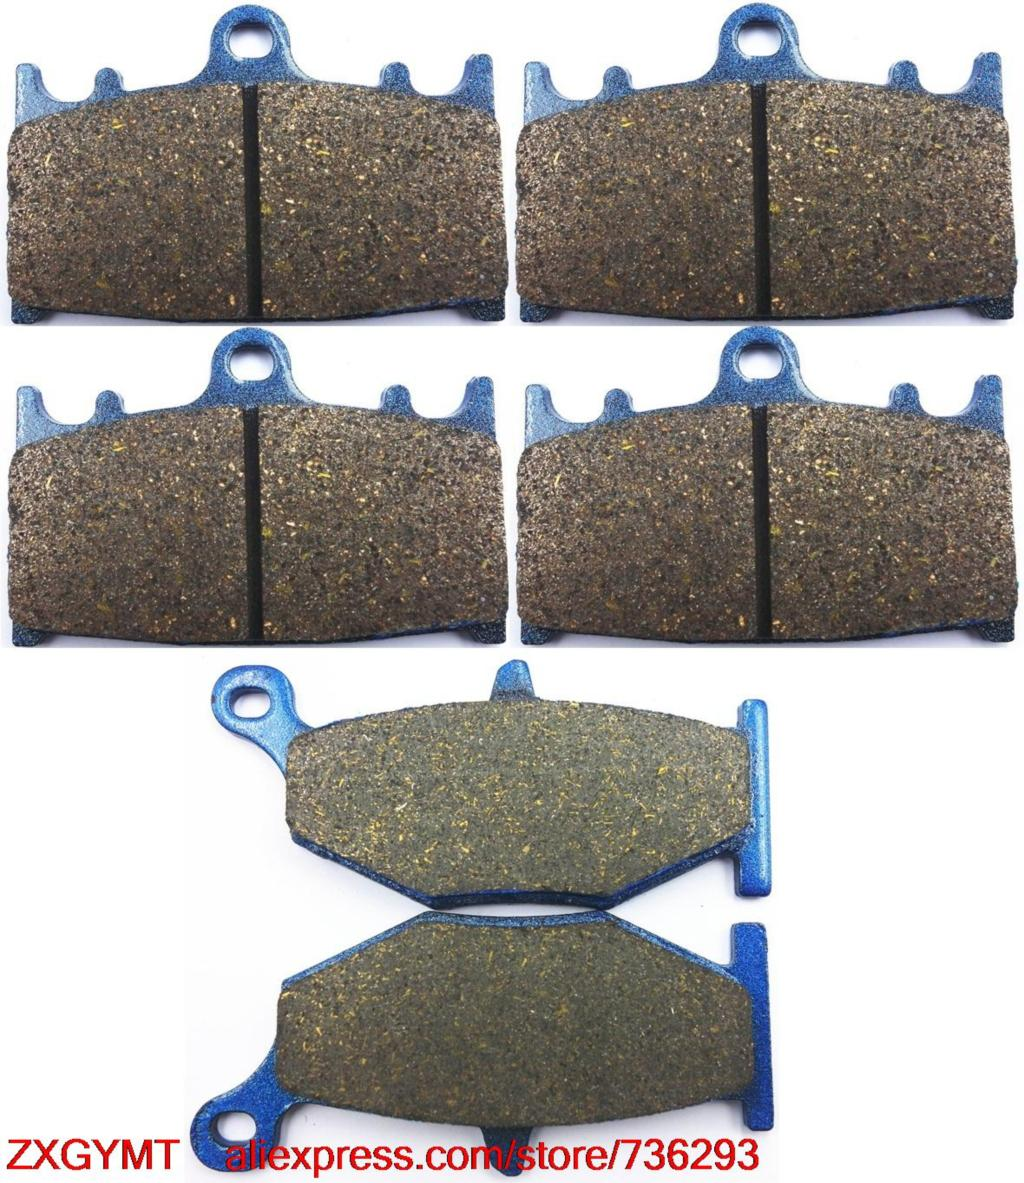 Motorcycle Semi-Metallic Brake Pad Set for SUZUKI GSR600 GSR 600 2006 & up